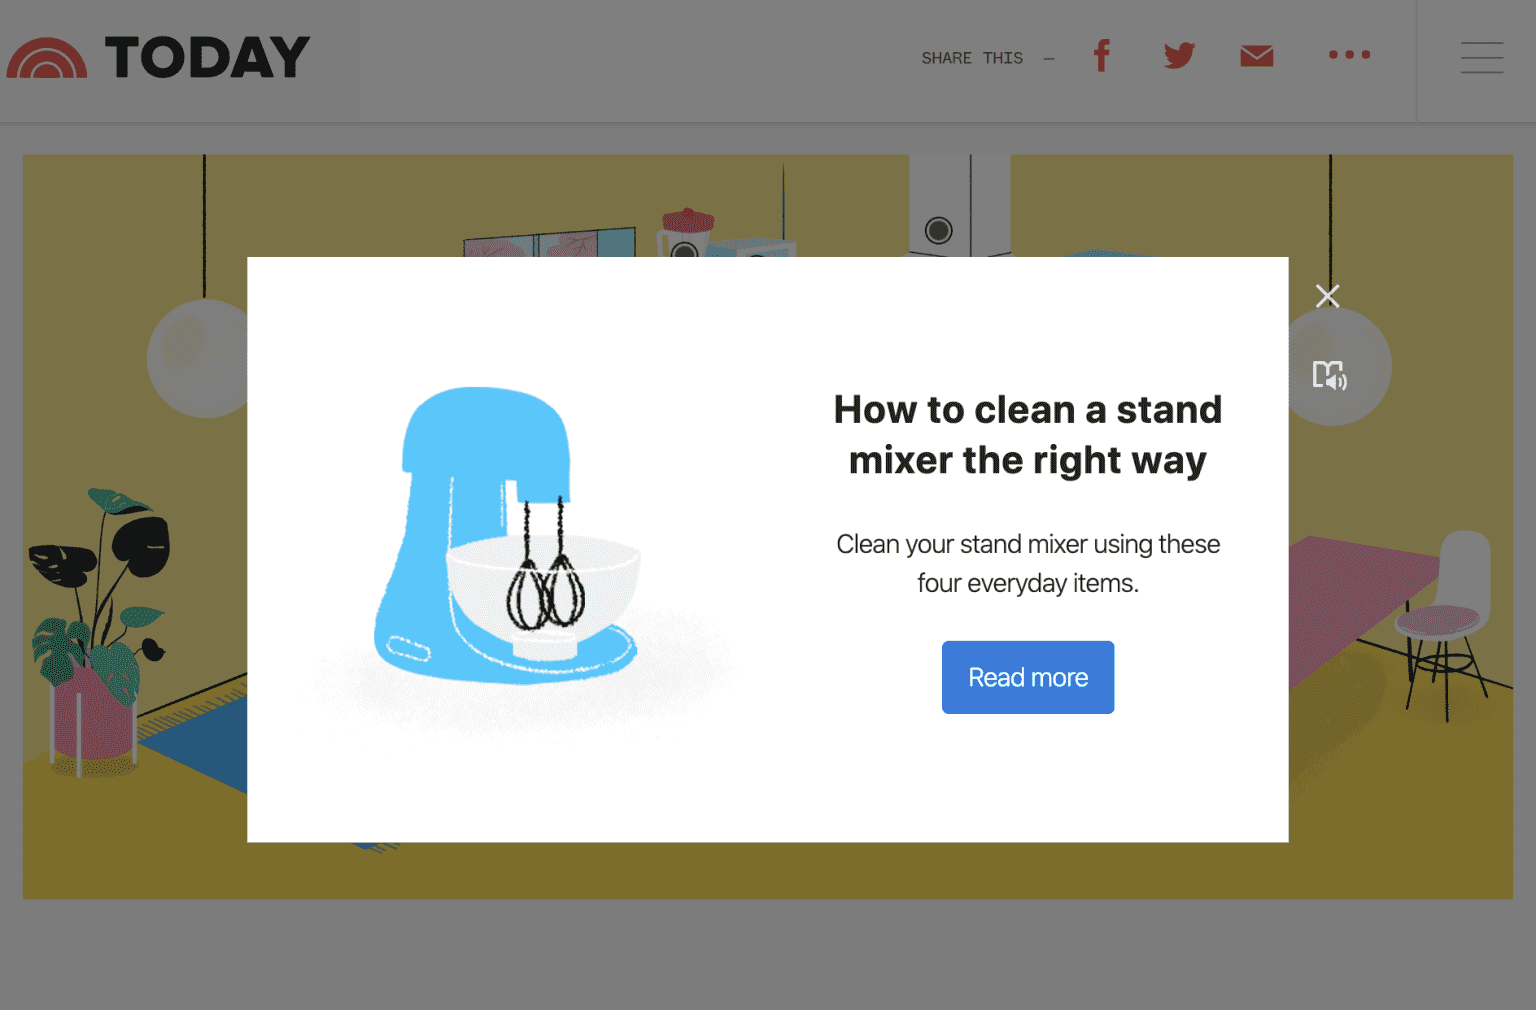 TODAY Show's Interactive Cleaning Guide